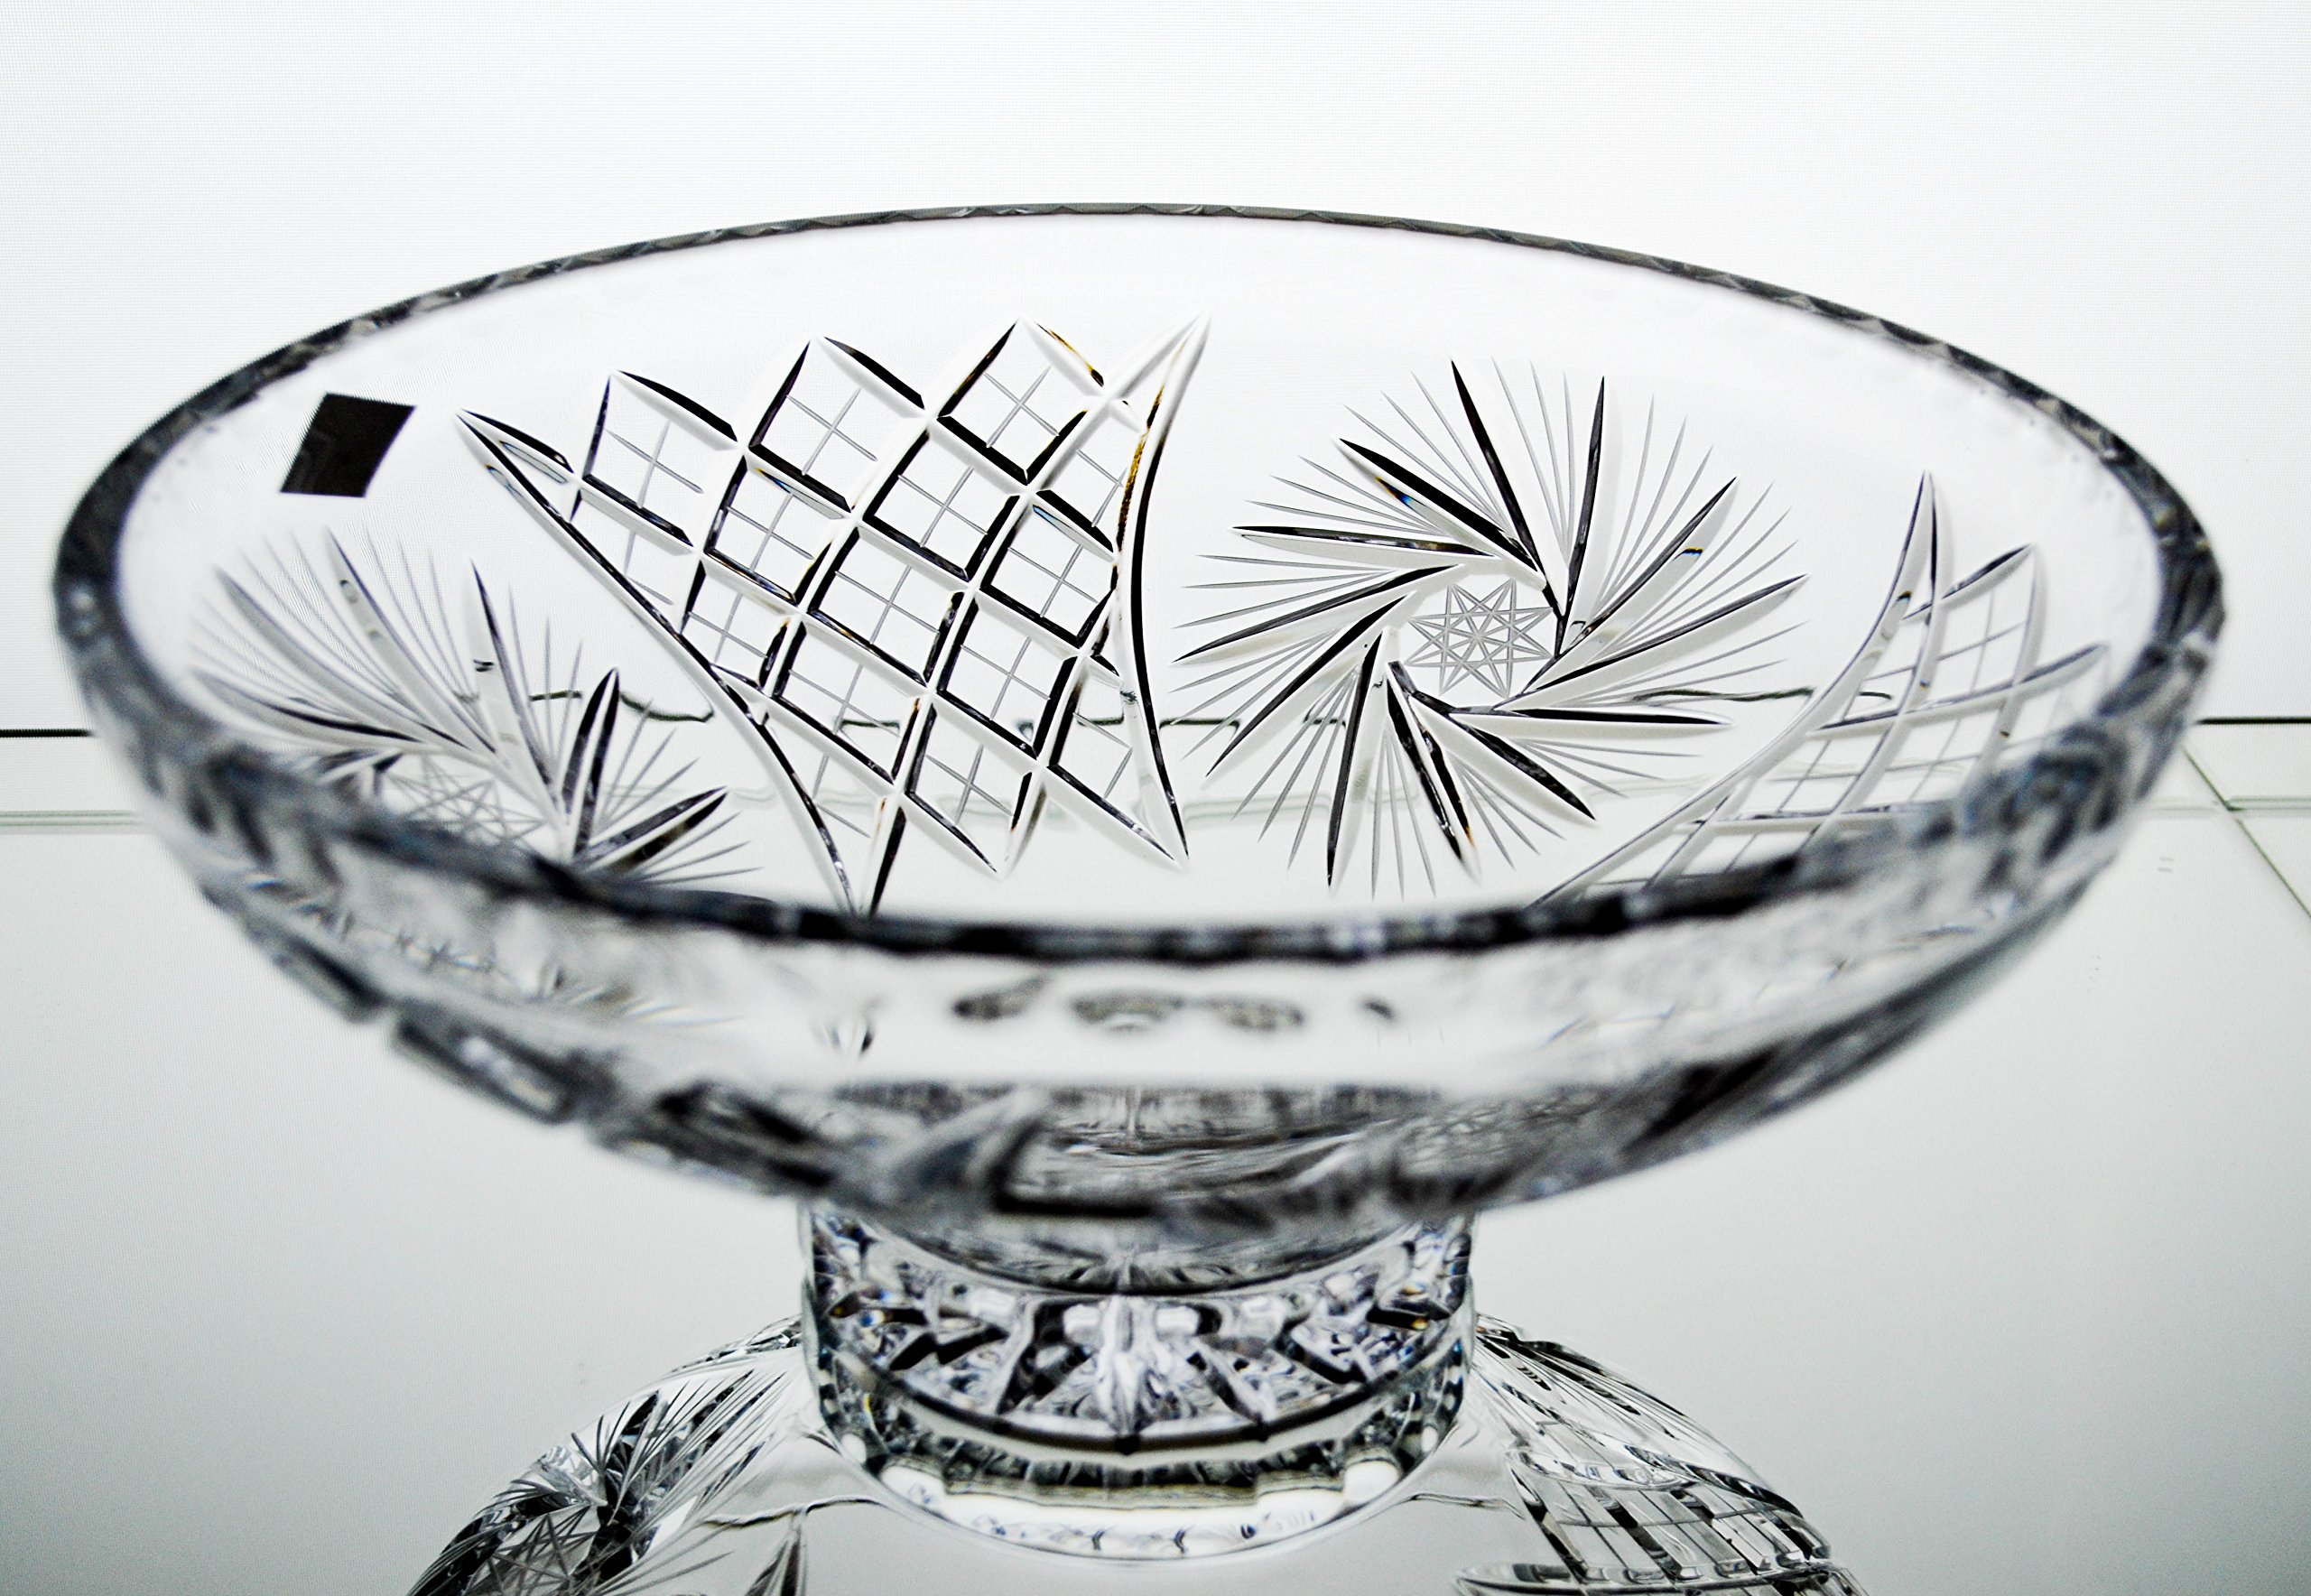 """Czech Bohemian Crystal Glass Bowl 10""""-Dia Hand Cut Decorative Gift Crystal Glass Bowl Vintage Design Elegant Centerpiece Dish Salads Fruits Candies Classic Style Crystal Glass"""